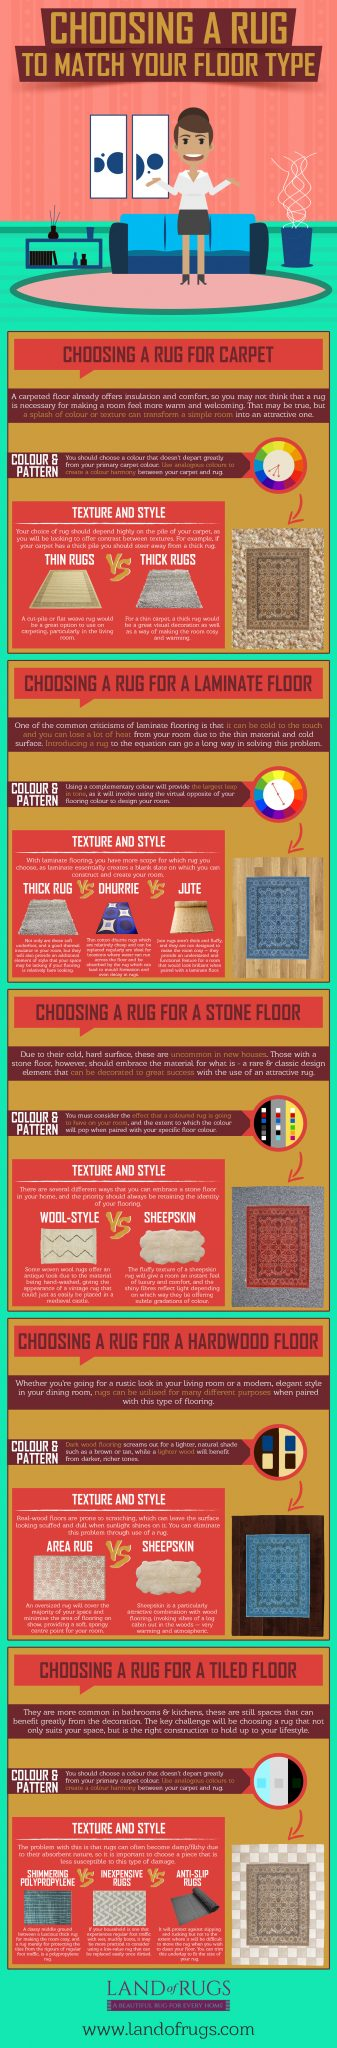 CHOOSING A RUG TO MATCH YOUR FLOOR TYPE (1)